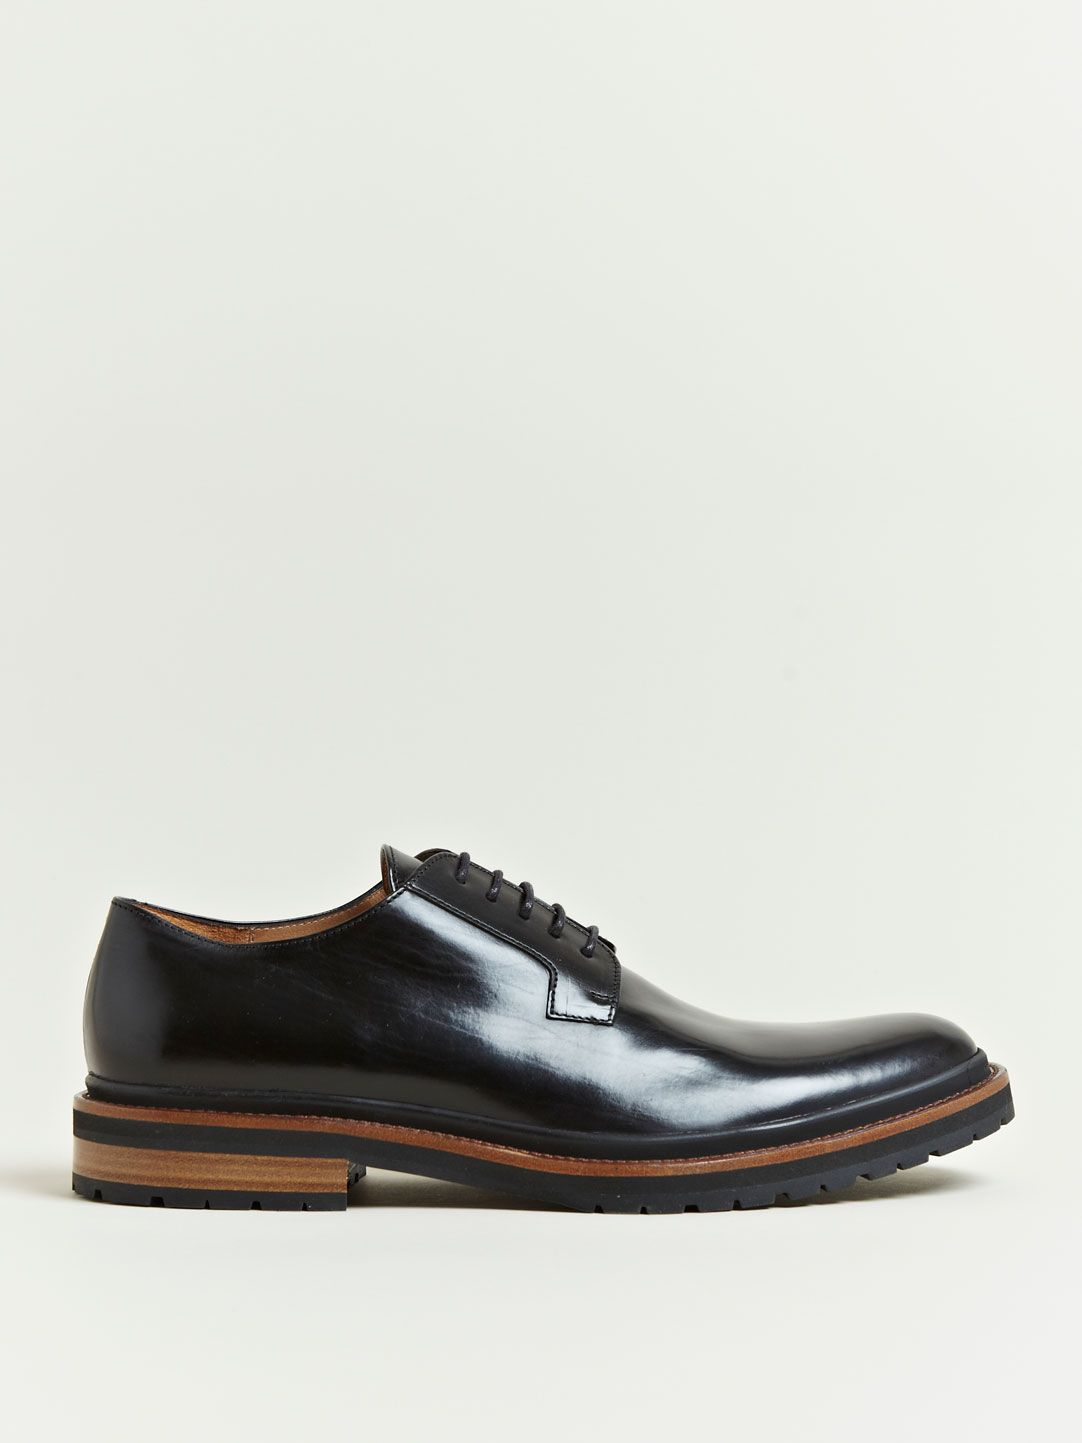 timeless design f5a29 05016 Dries Van Noten Men's Leather Oxford Shoes | KINSHIP | Scarpe